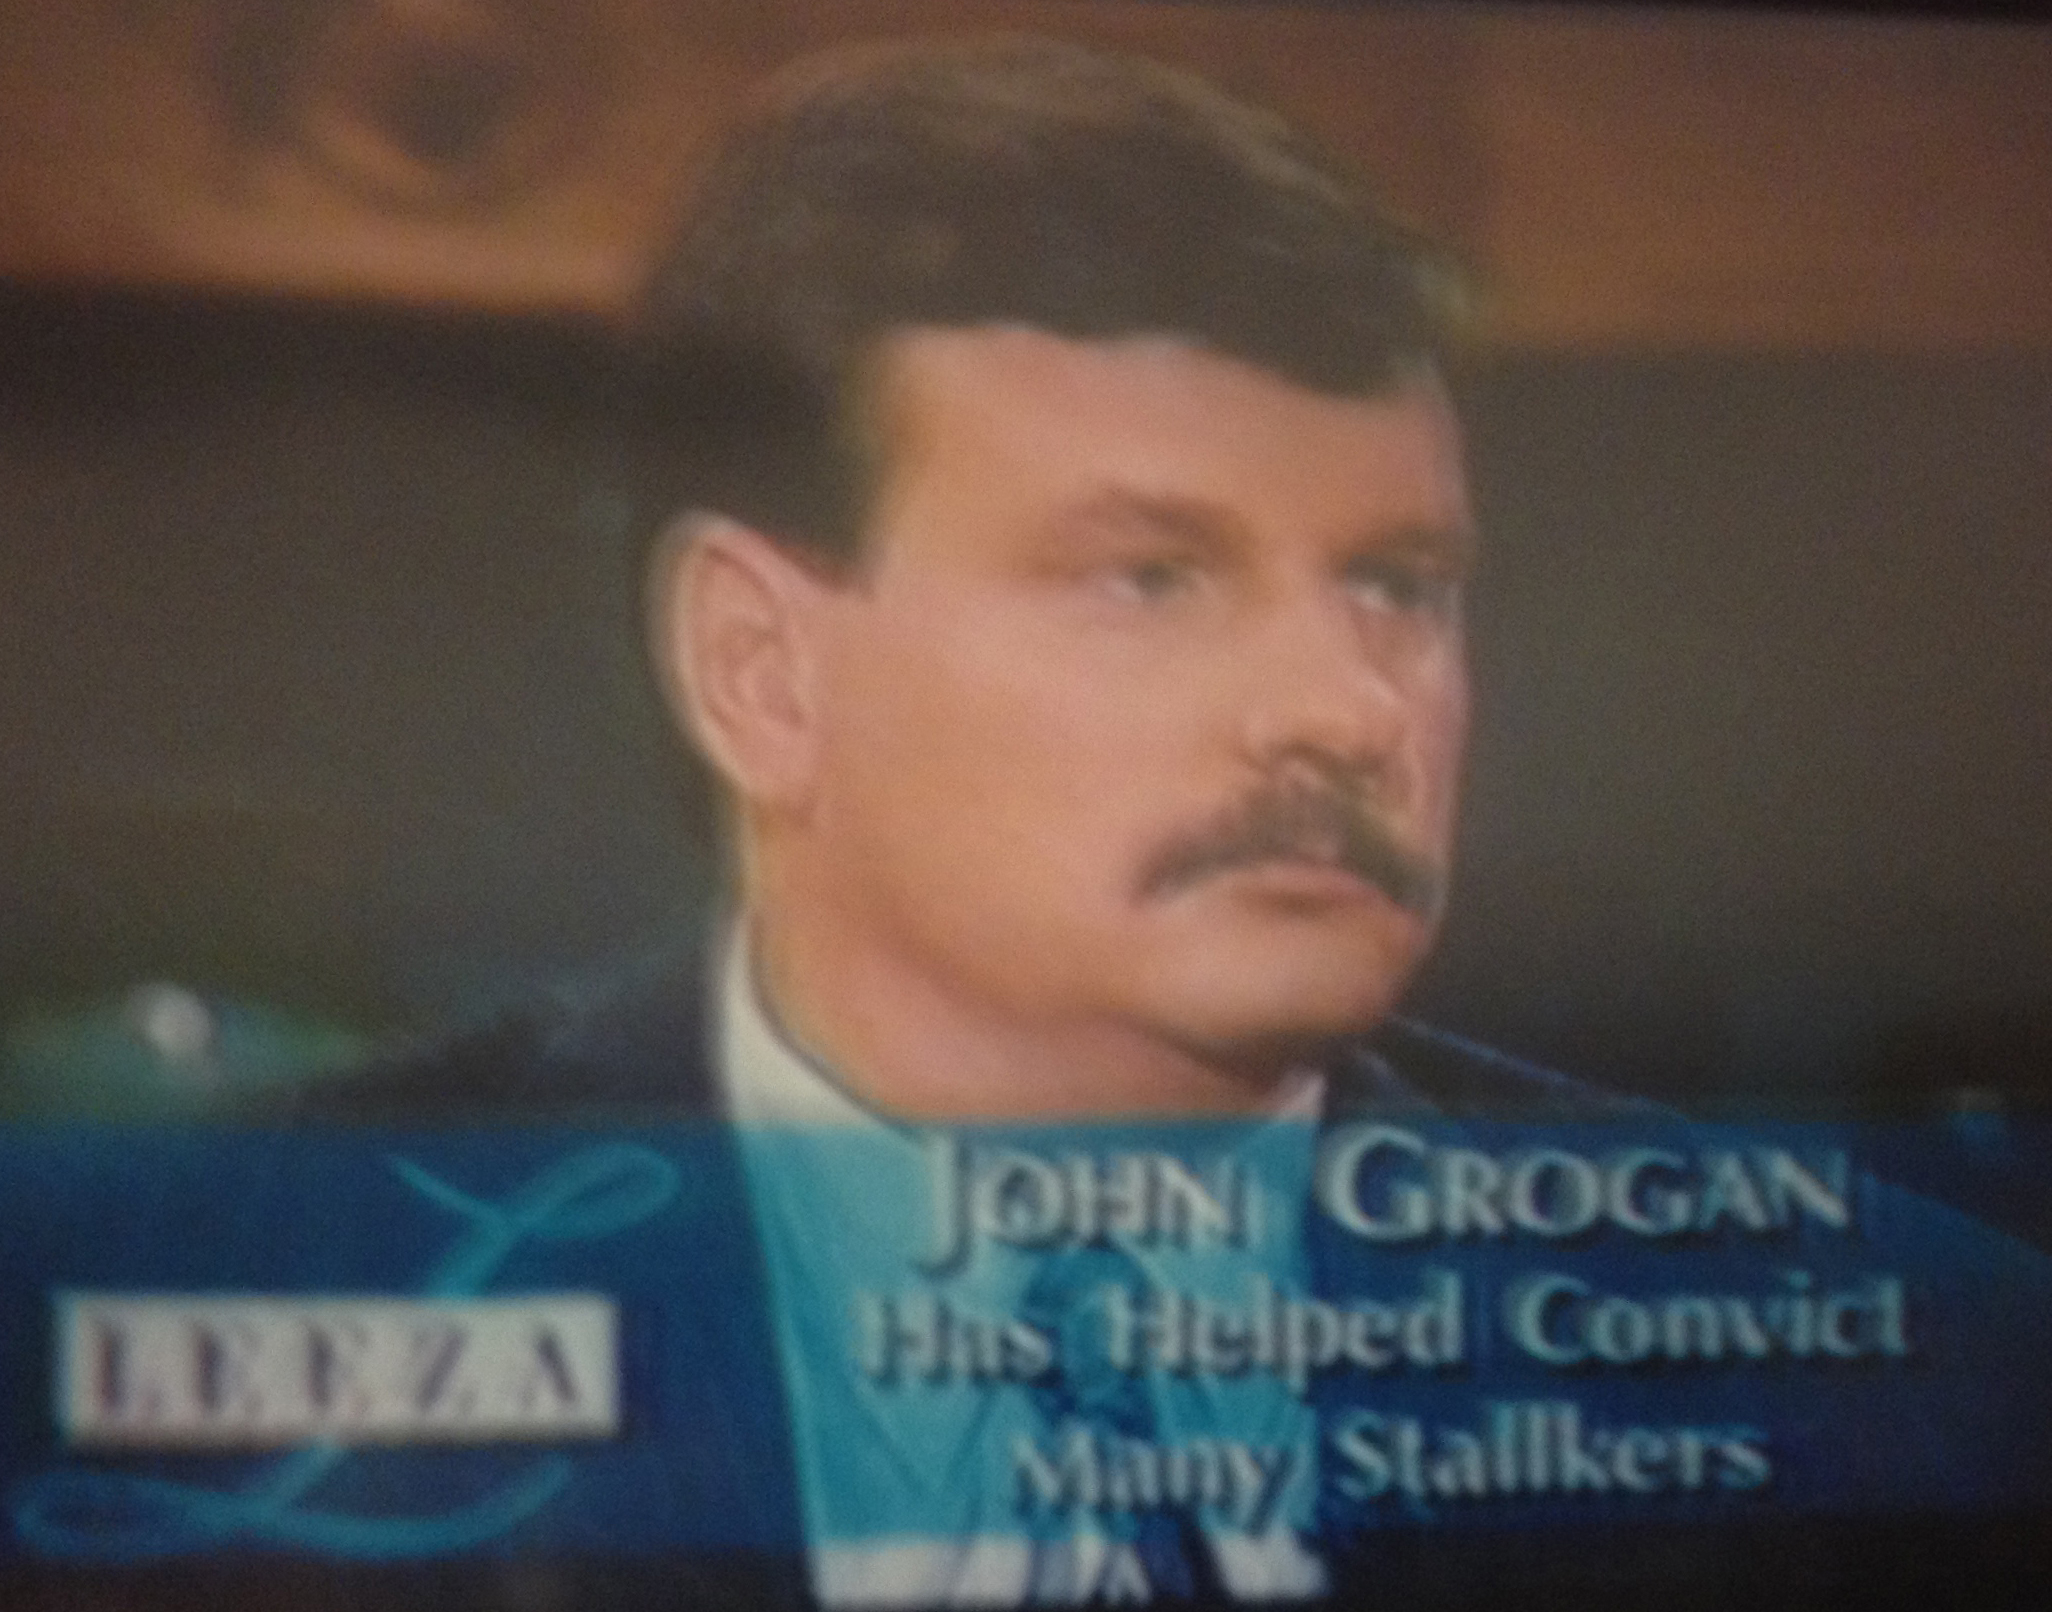 private investigator John Grogan